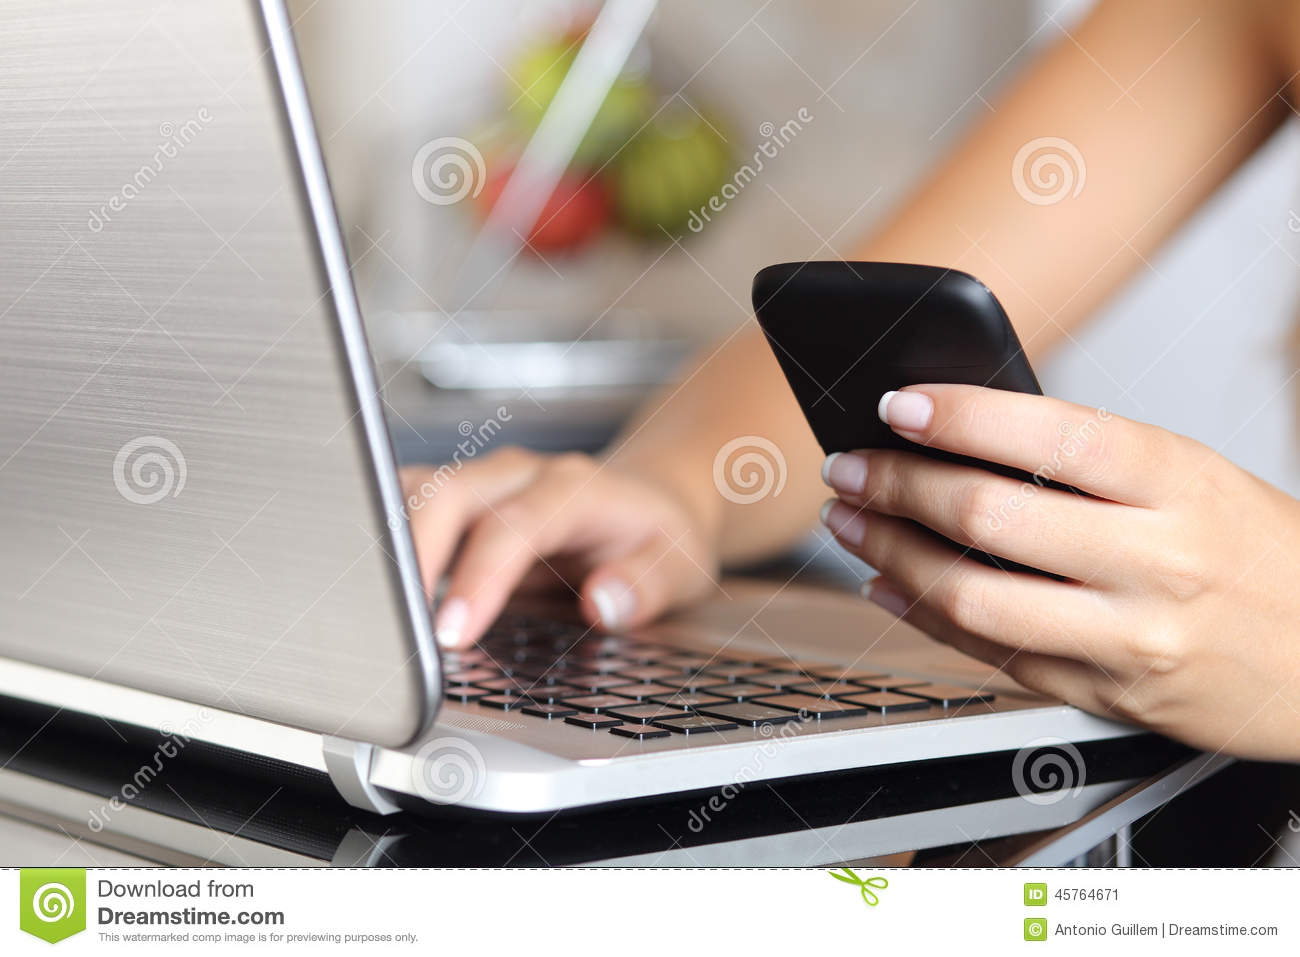 Woman hand using a smart phone and typing a laptop at home